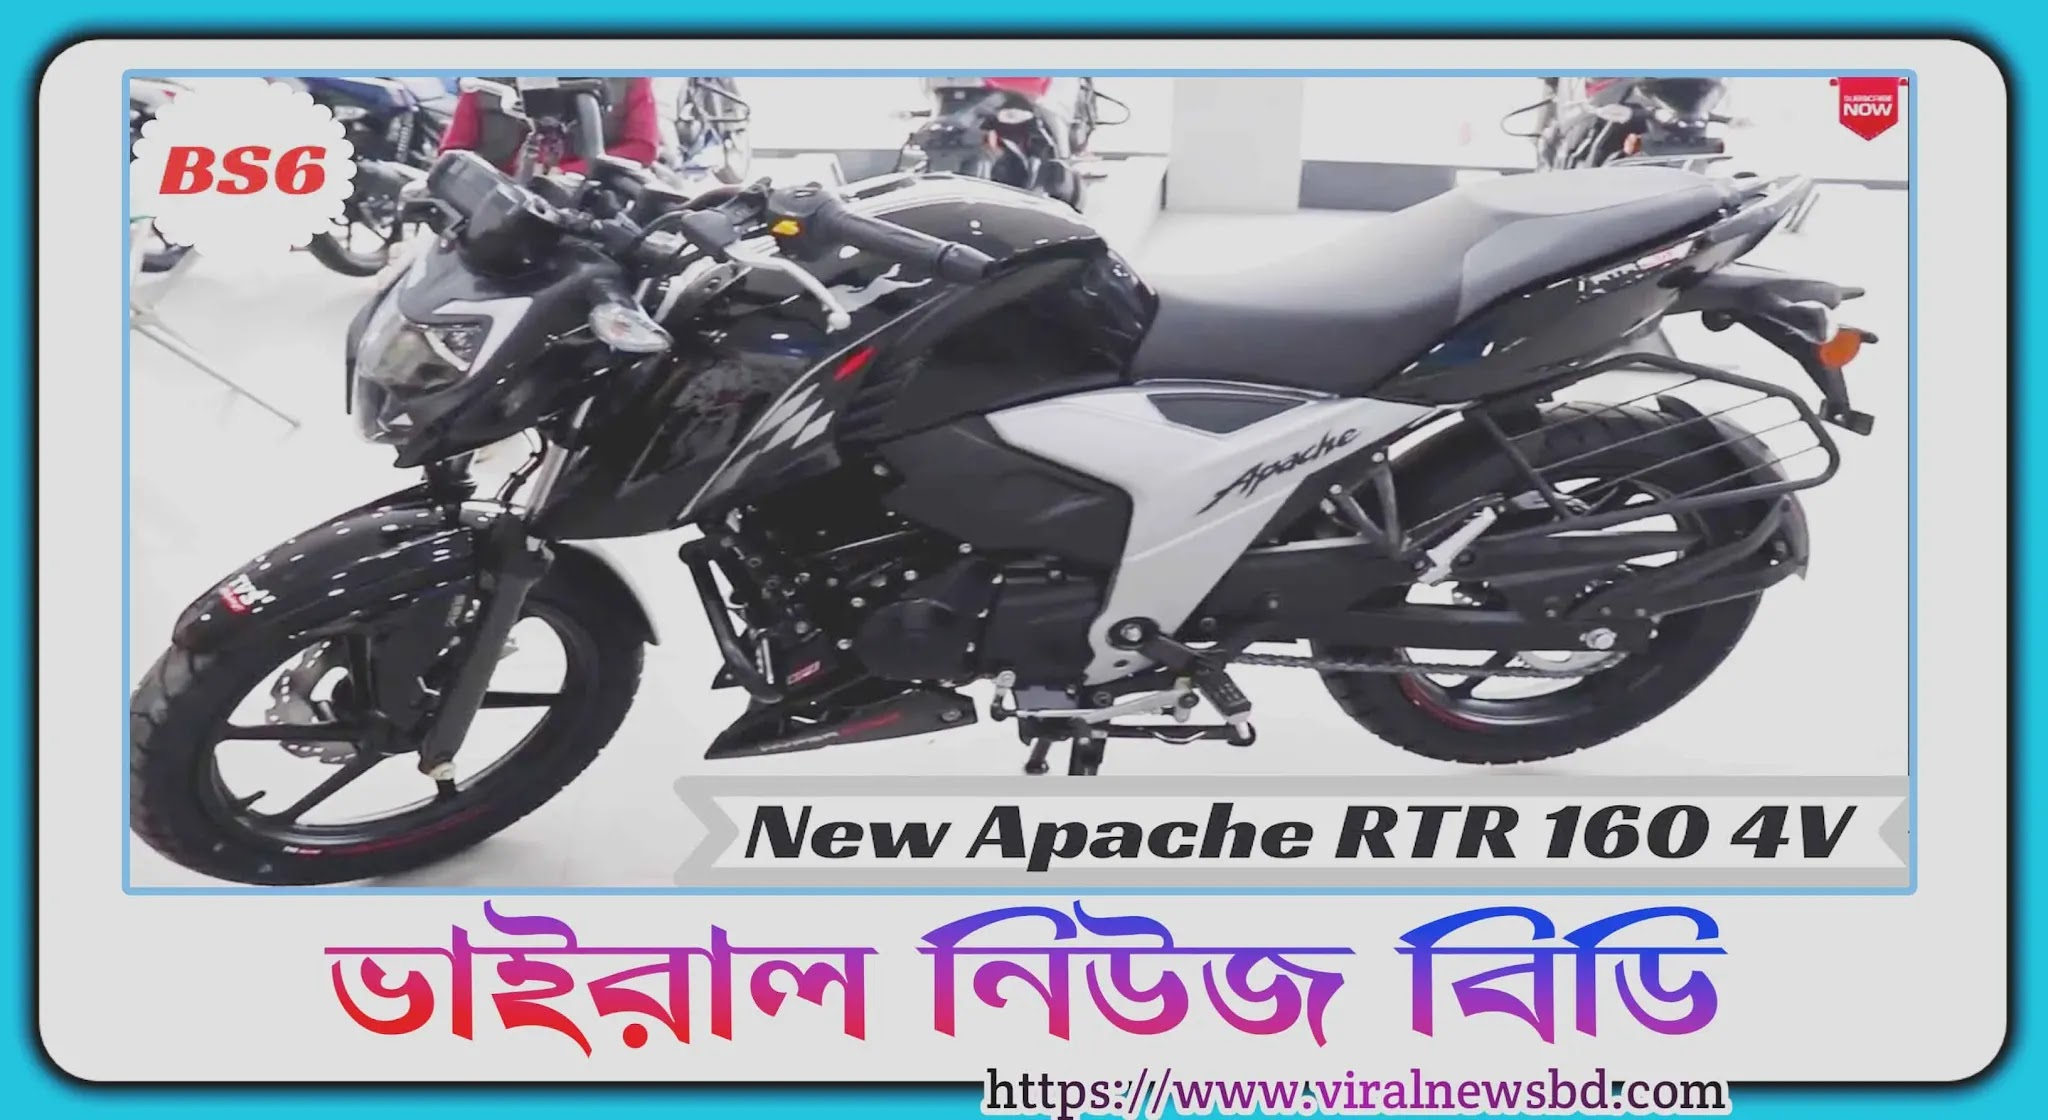 About Apache RTR 160 4V